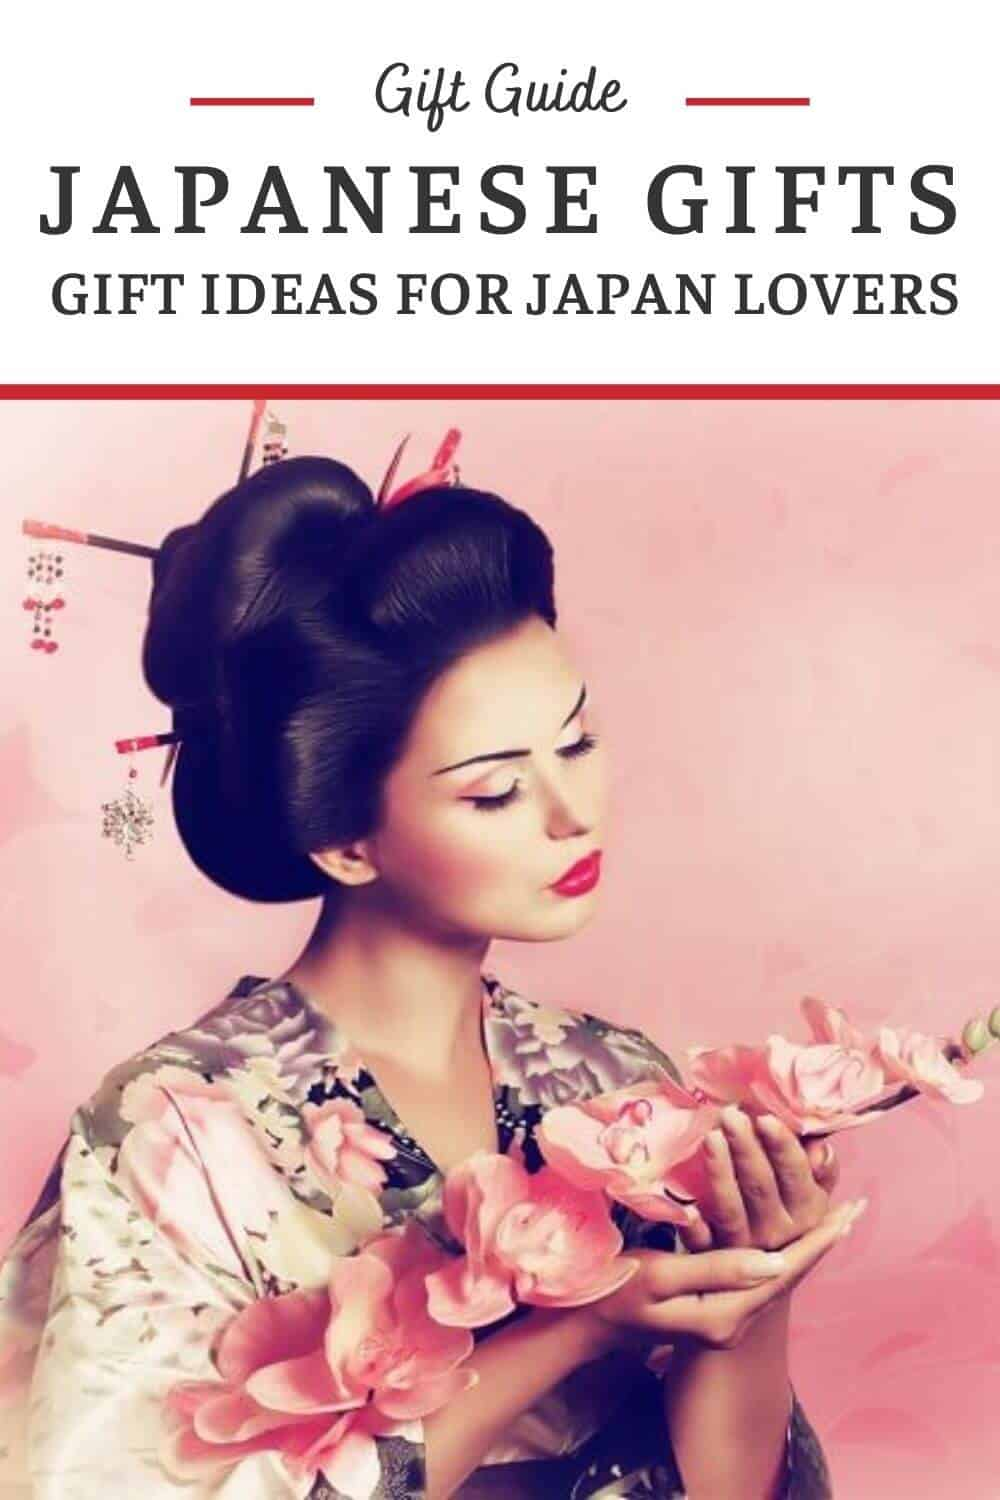 Japanese Gifts - Gifts for The Japan Obsessed